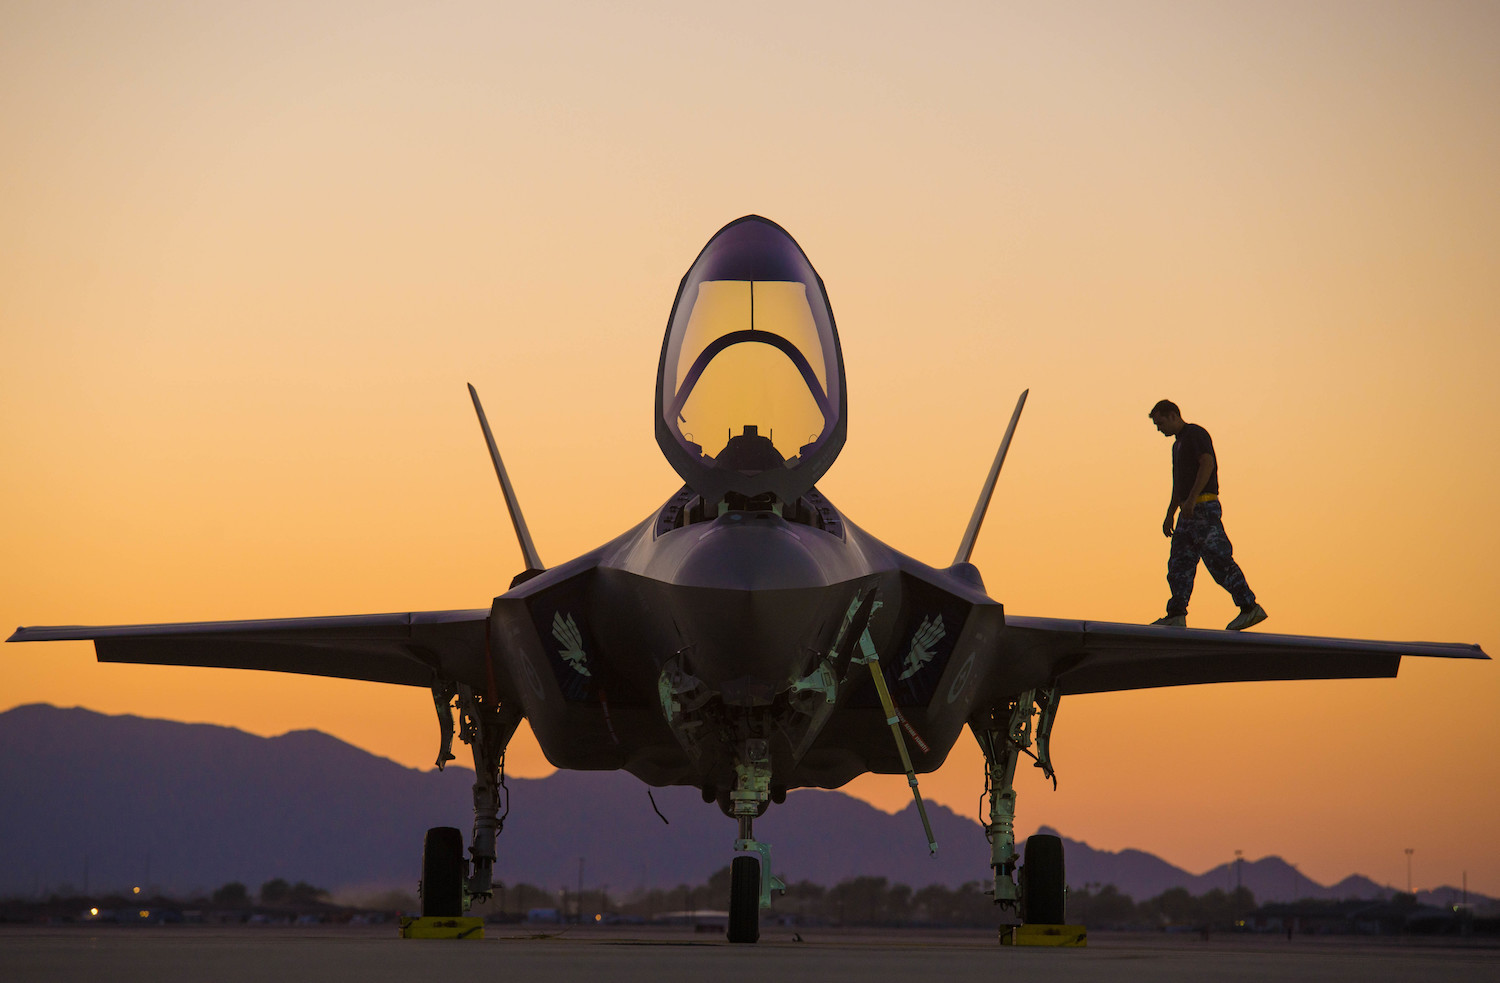 Lockheed Martin F-35 stealth fighters